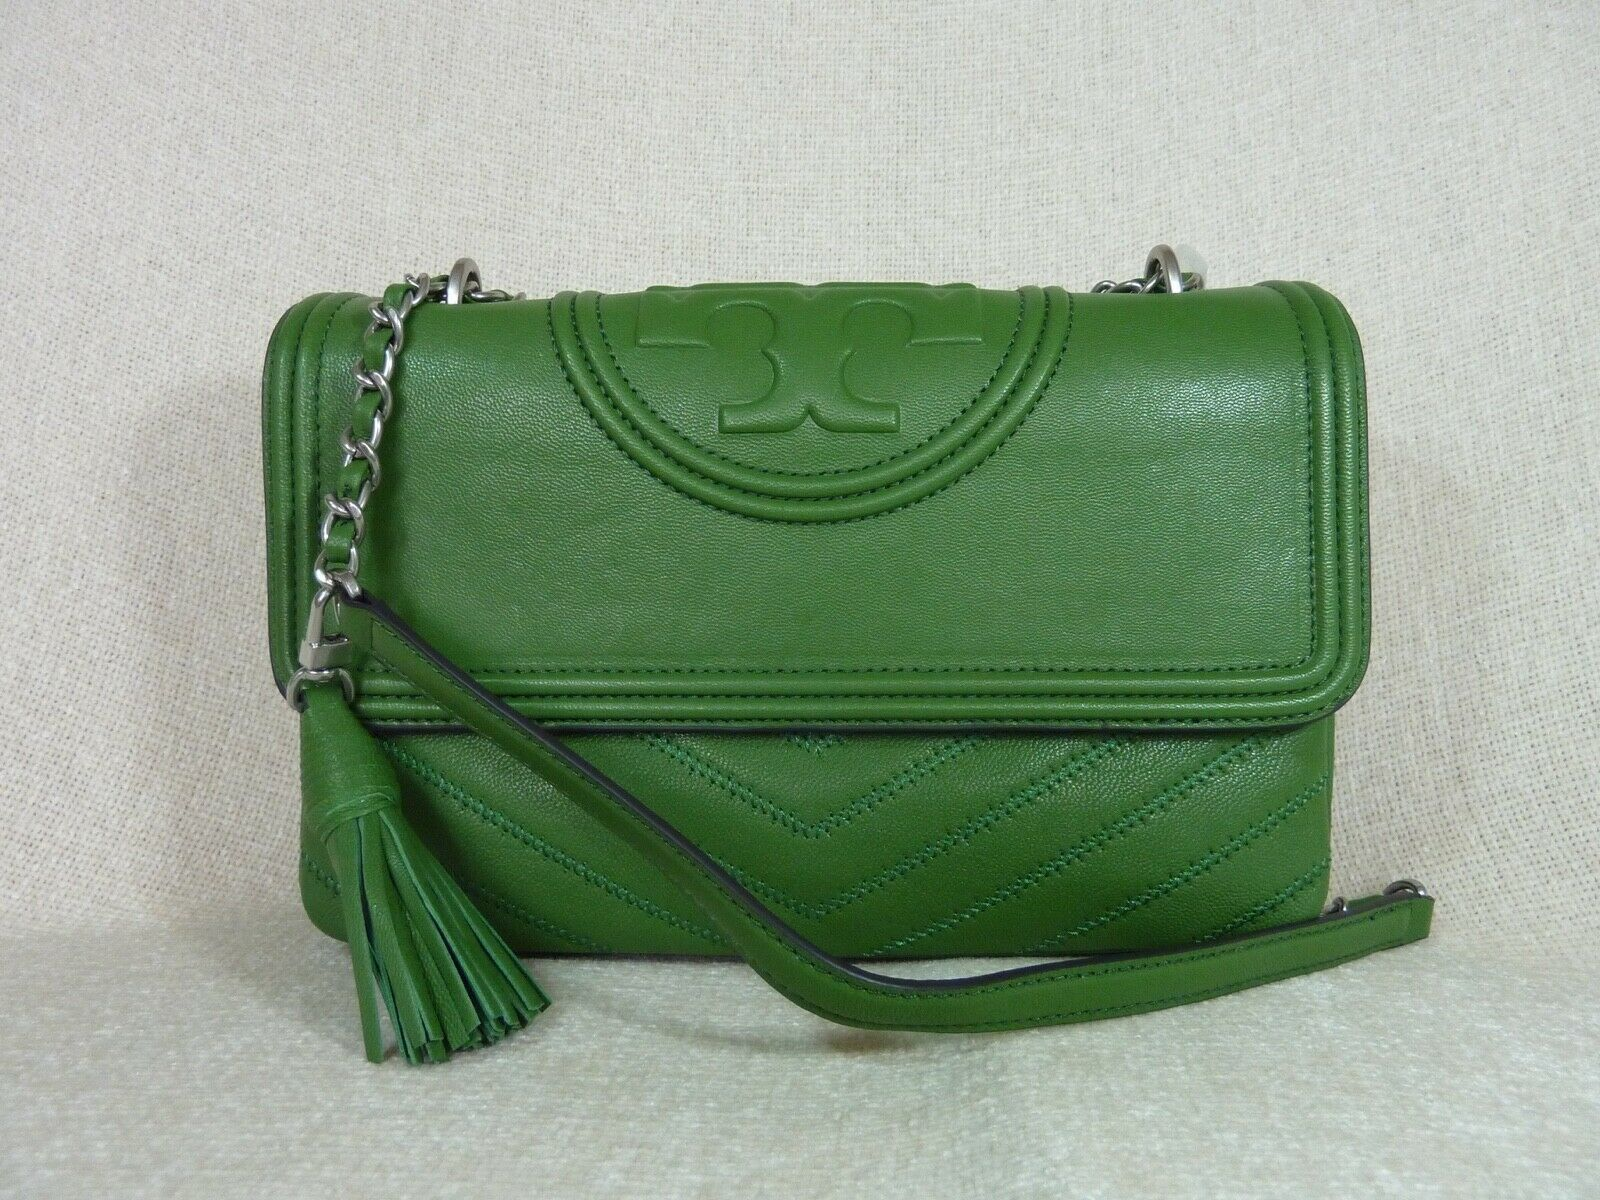 NWT Tory Burch Watercress Green Leather Fleming Convertible Shoulder Bag